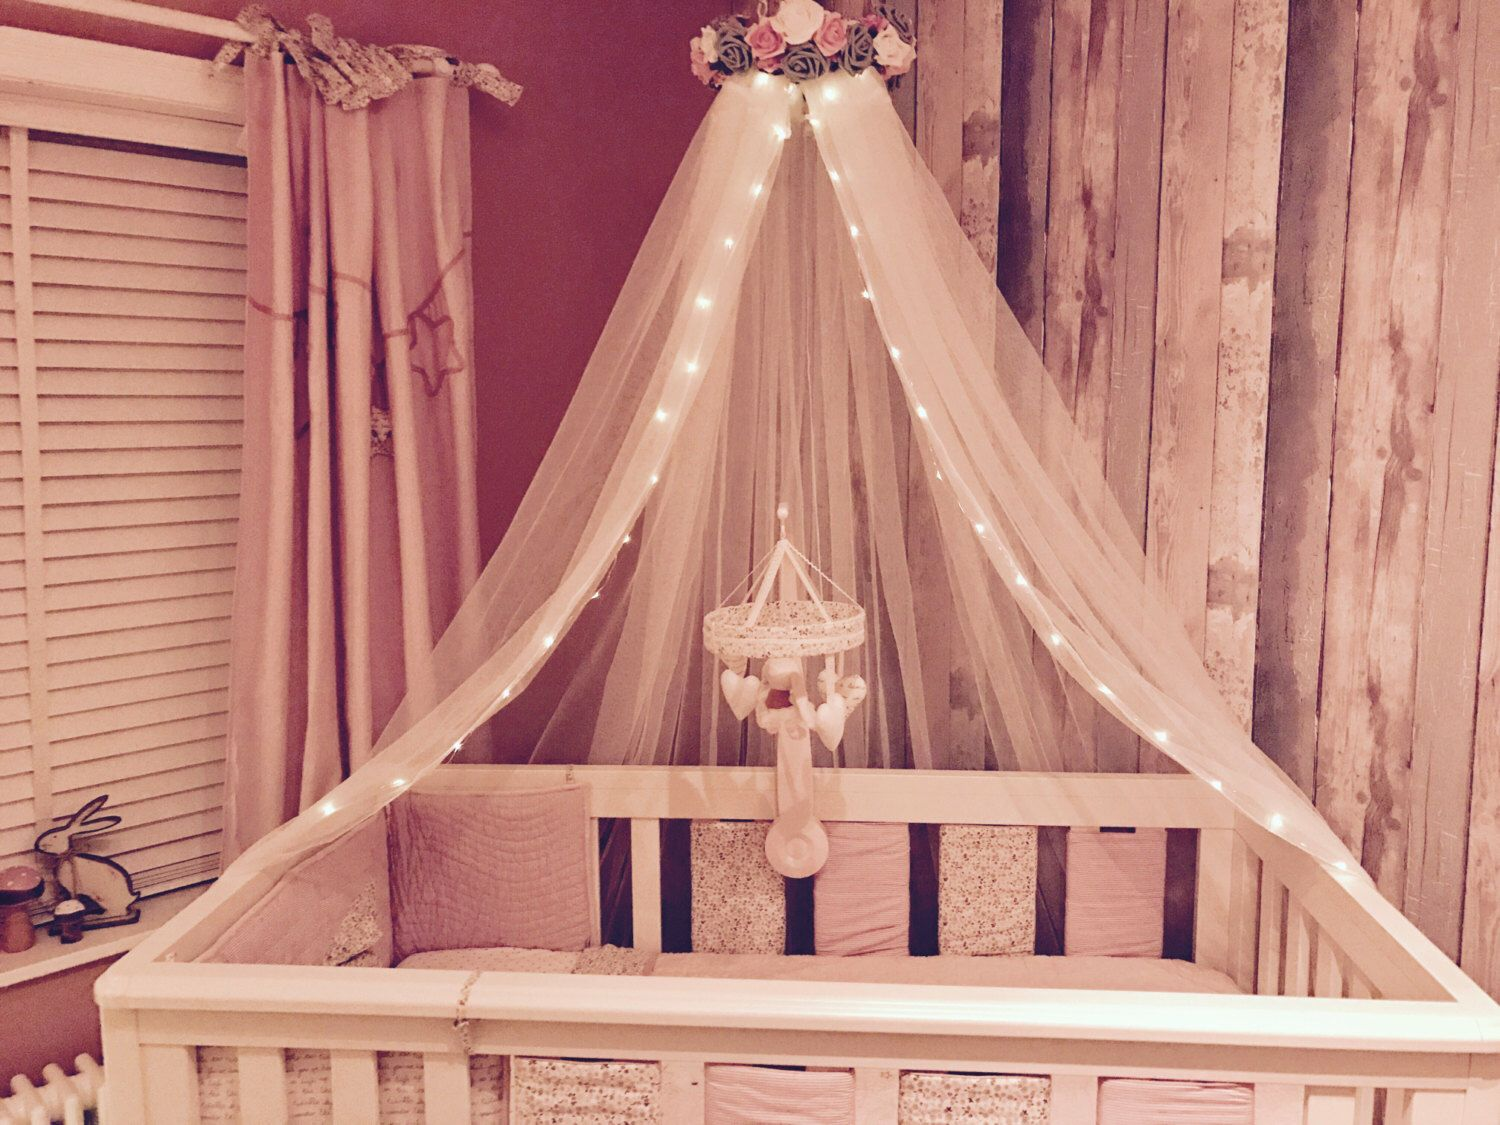 Bespoke bed canopy nursery cot canopy girls princess bedroom reading nook Pink Grey and White & Bespoke bed canopy nursery cot canopy girls princess bedroom ...